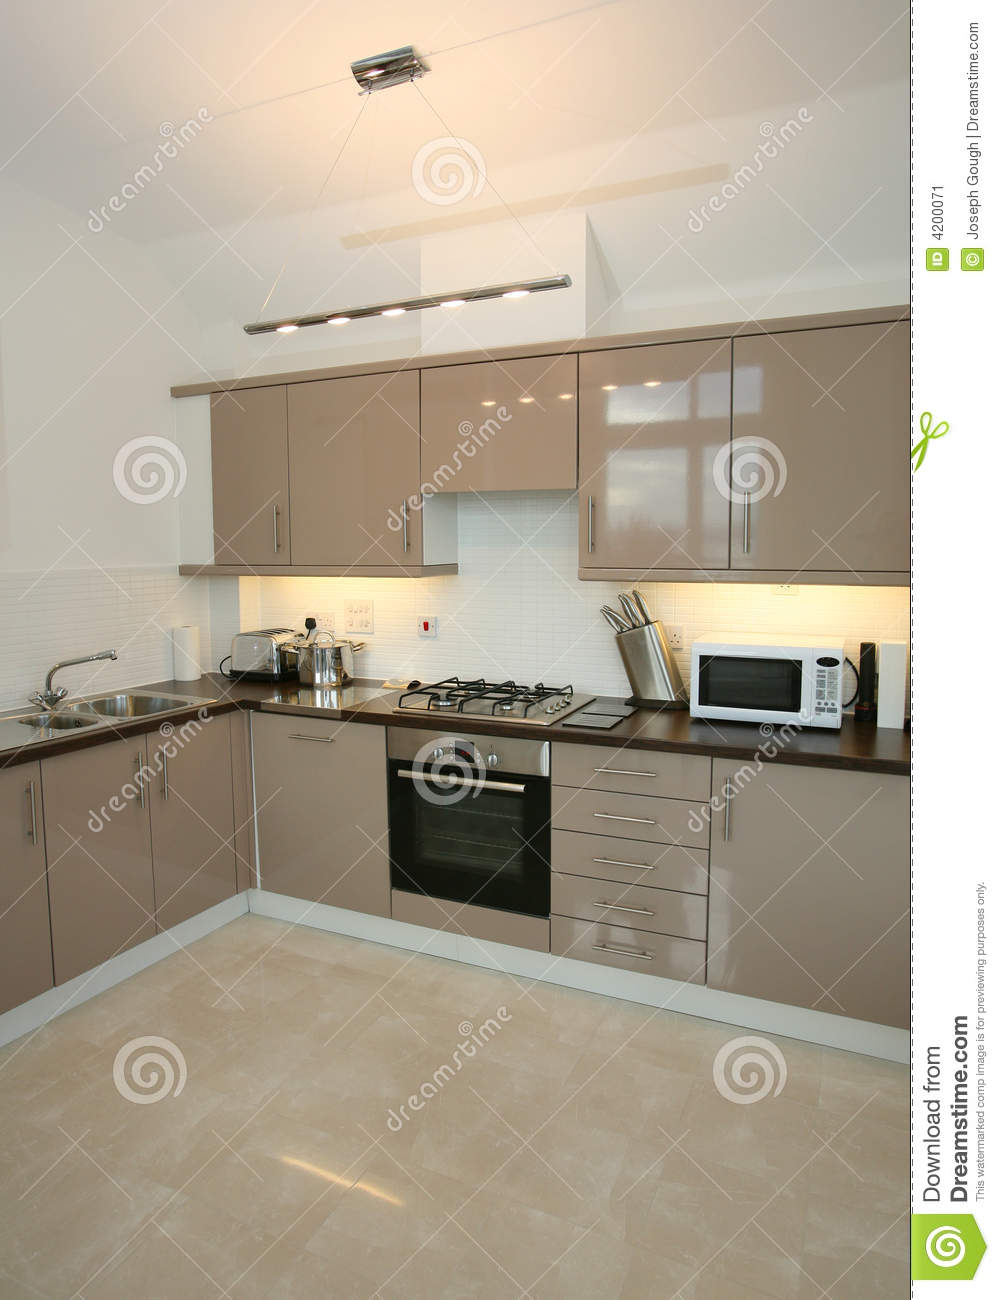 Modern luxury home kitchen interior stock image image for Modern house kitchen